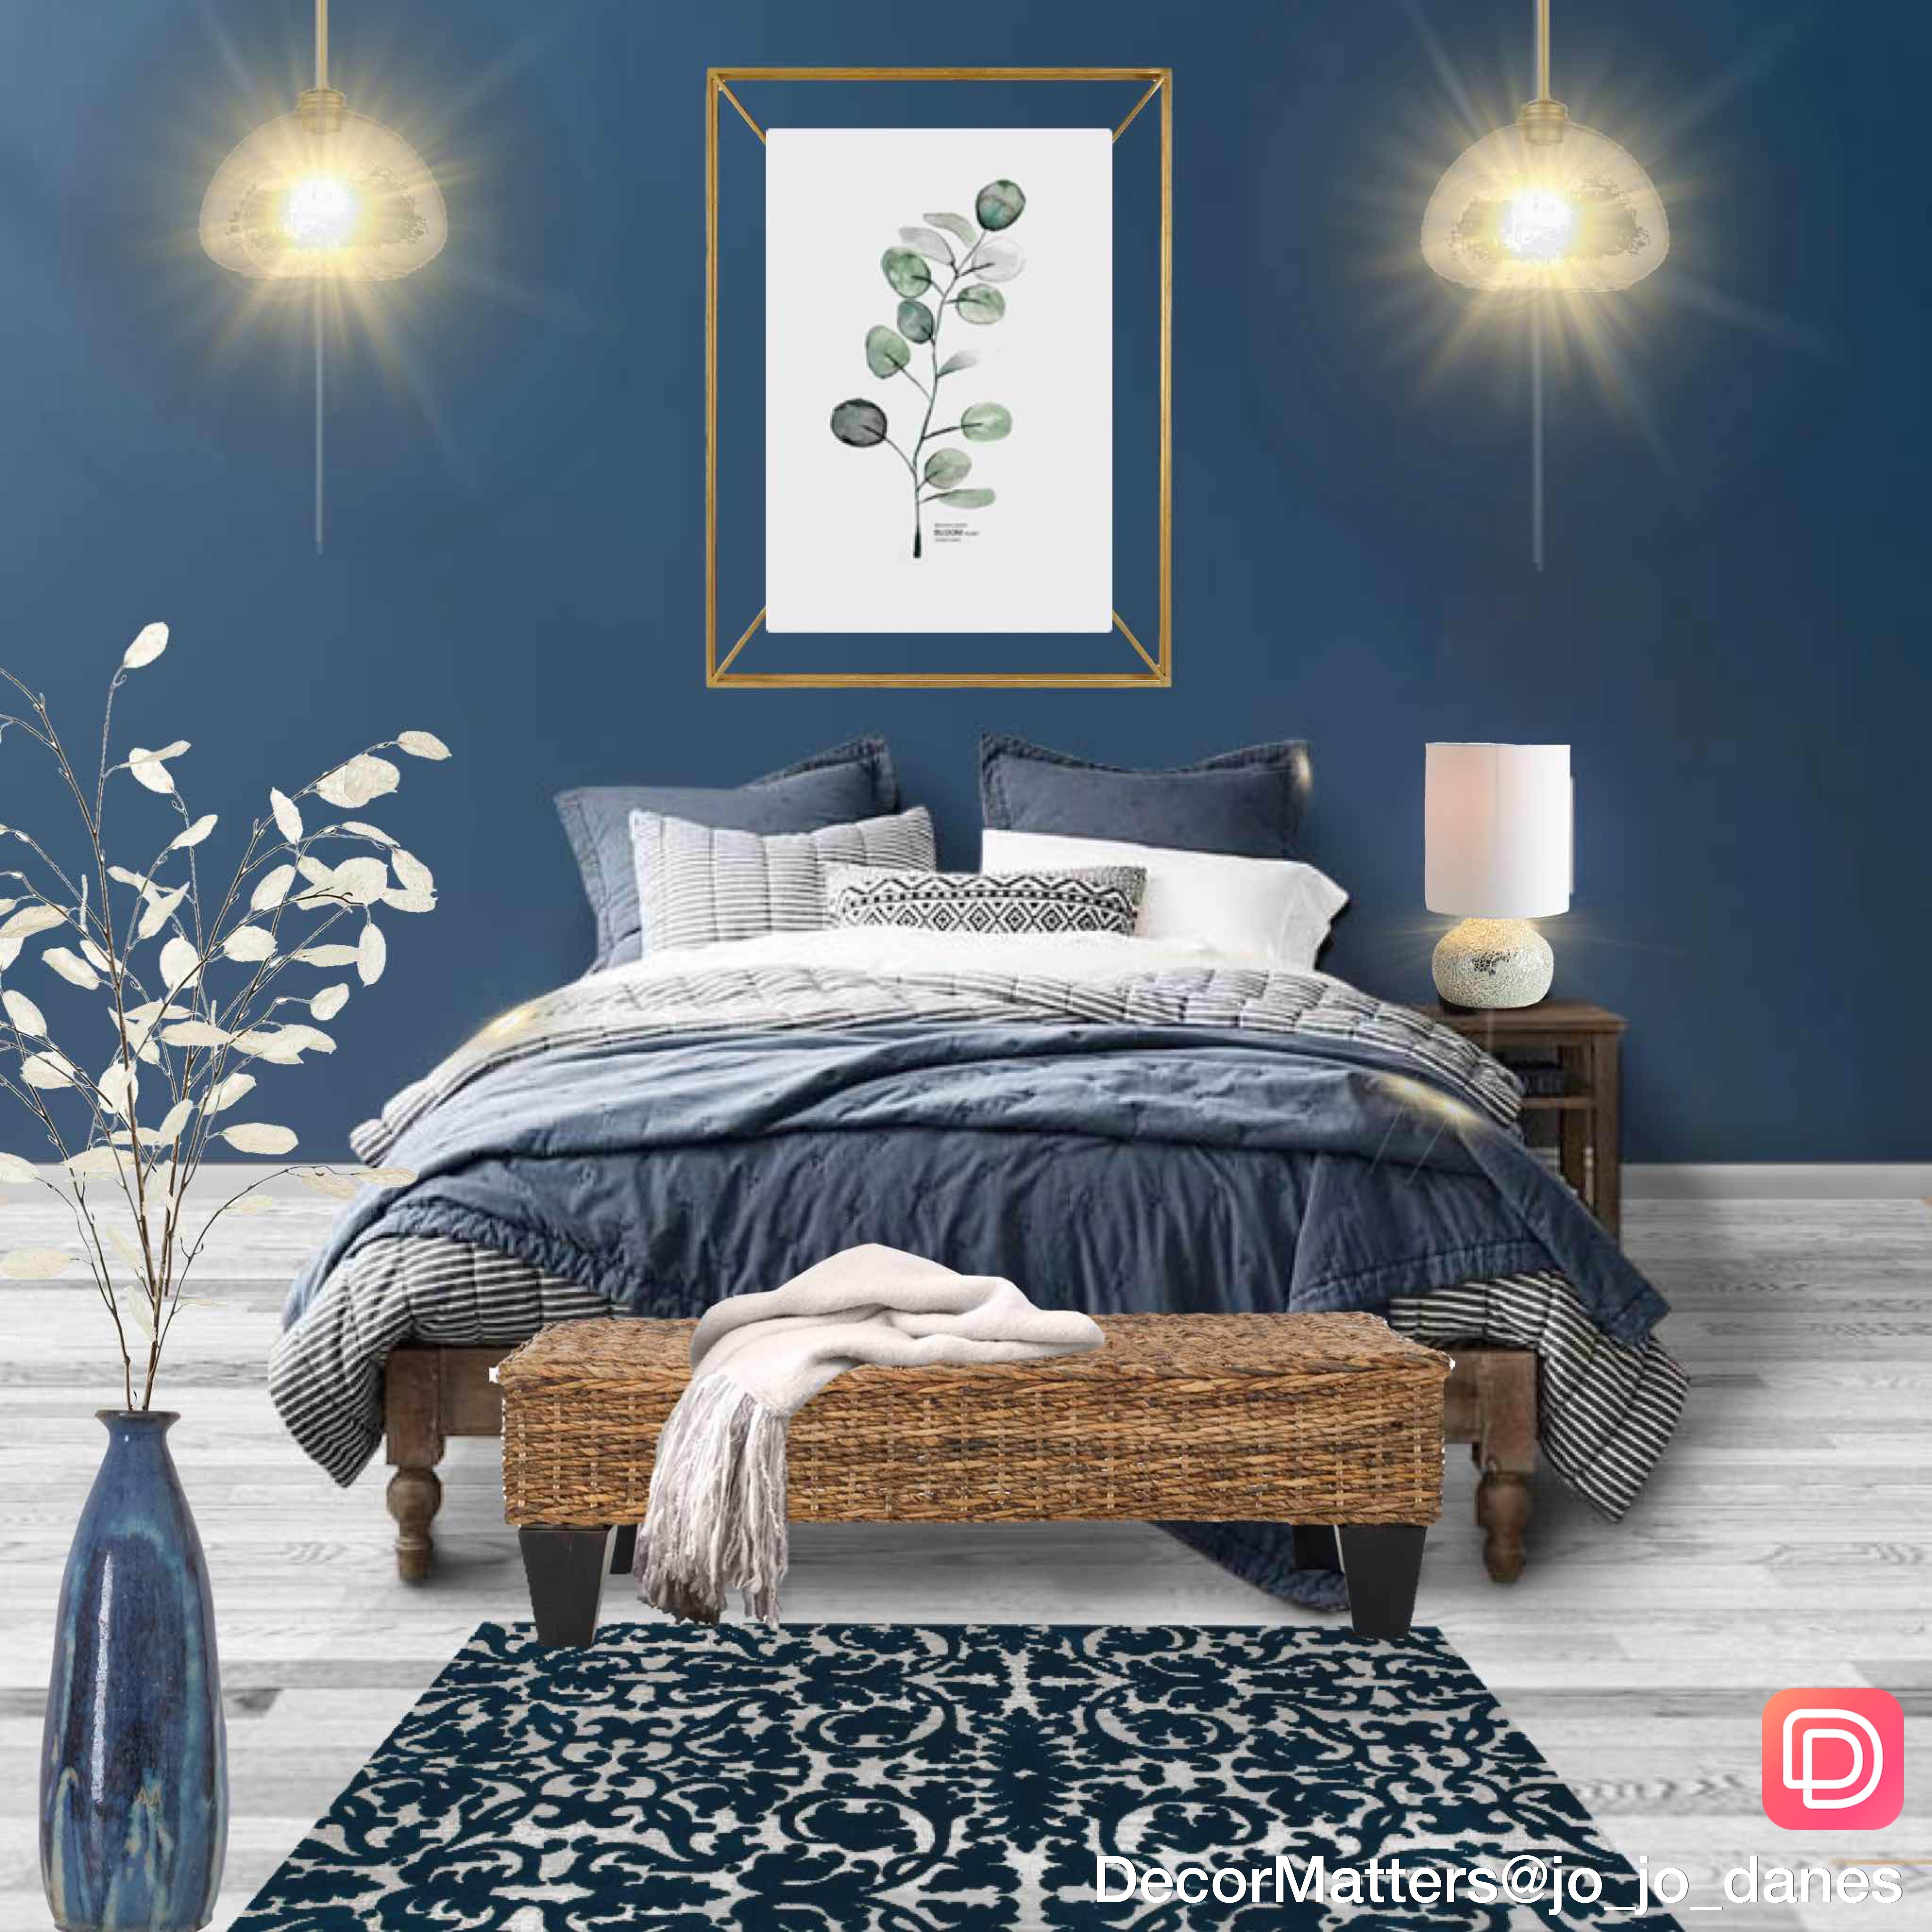 Beautiful Mix Of Blues In This Bedroom Design By One Of Our Users